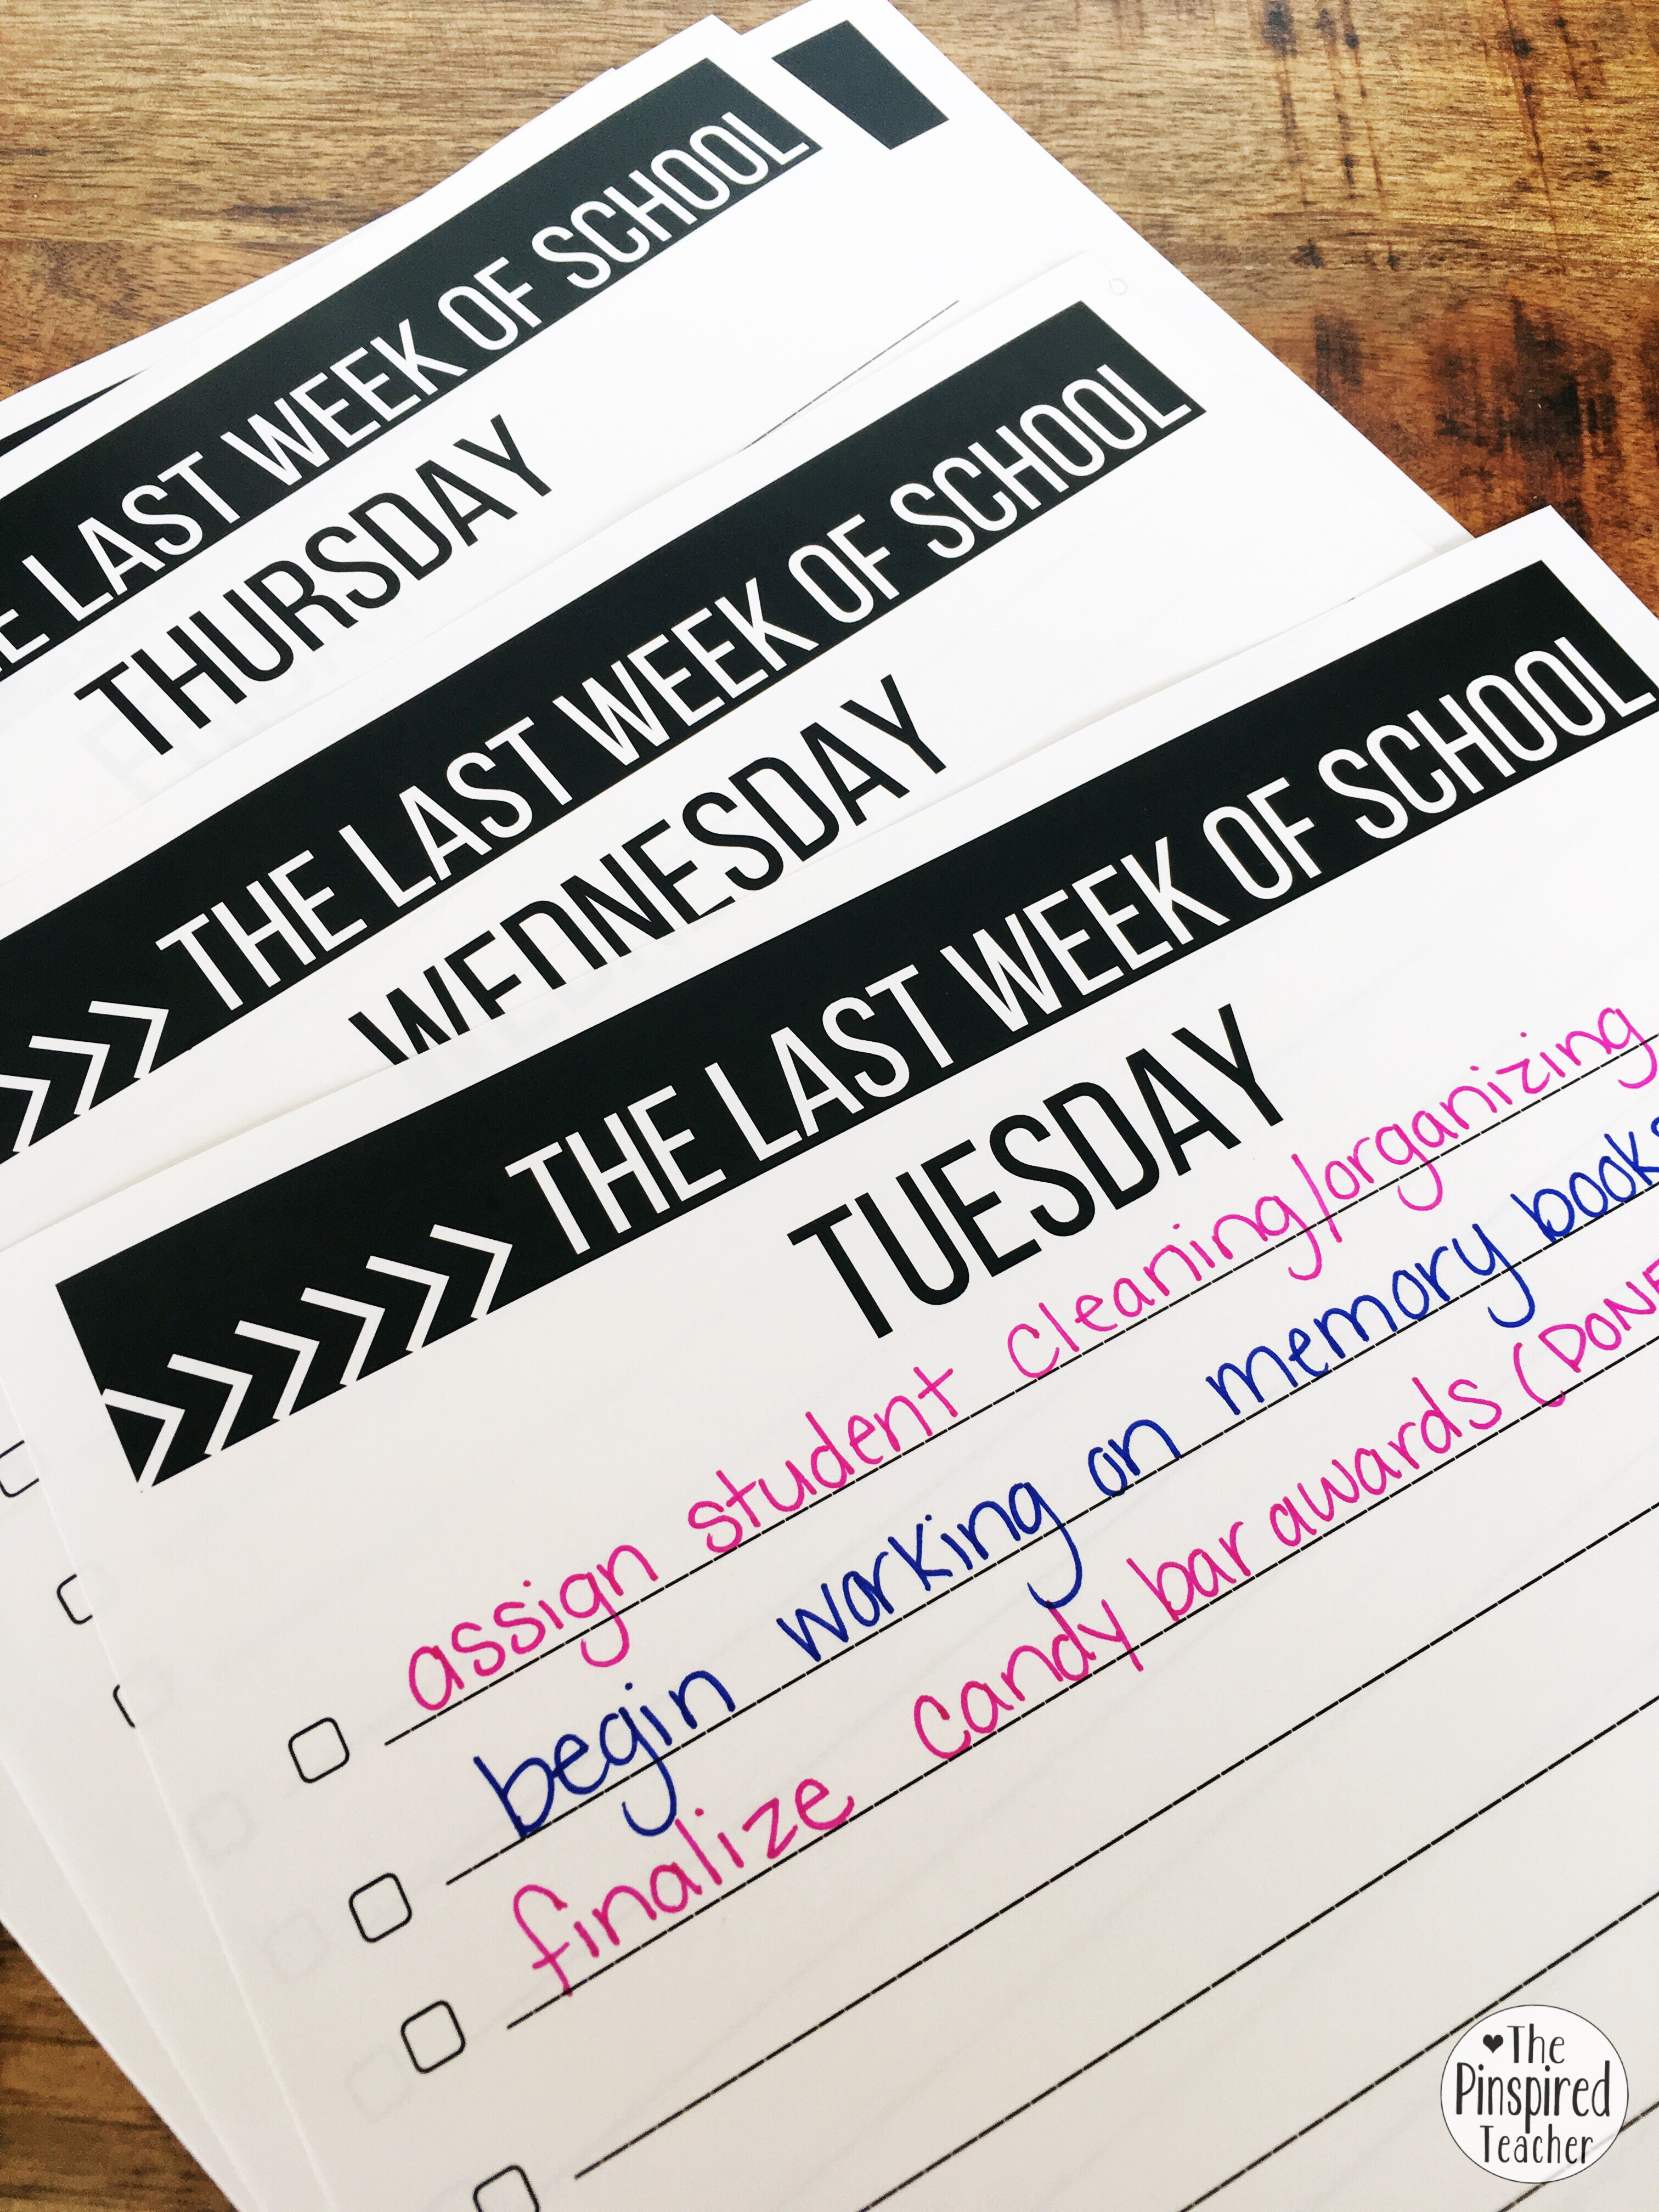 FREE planning checklists for the last week of school by the pinspired teacher